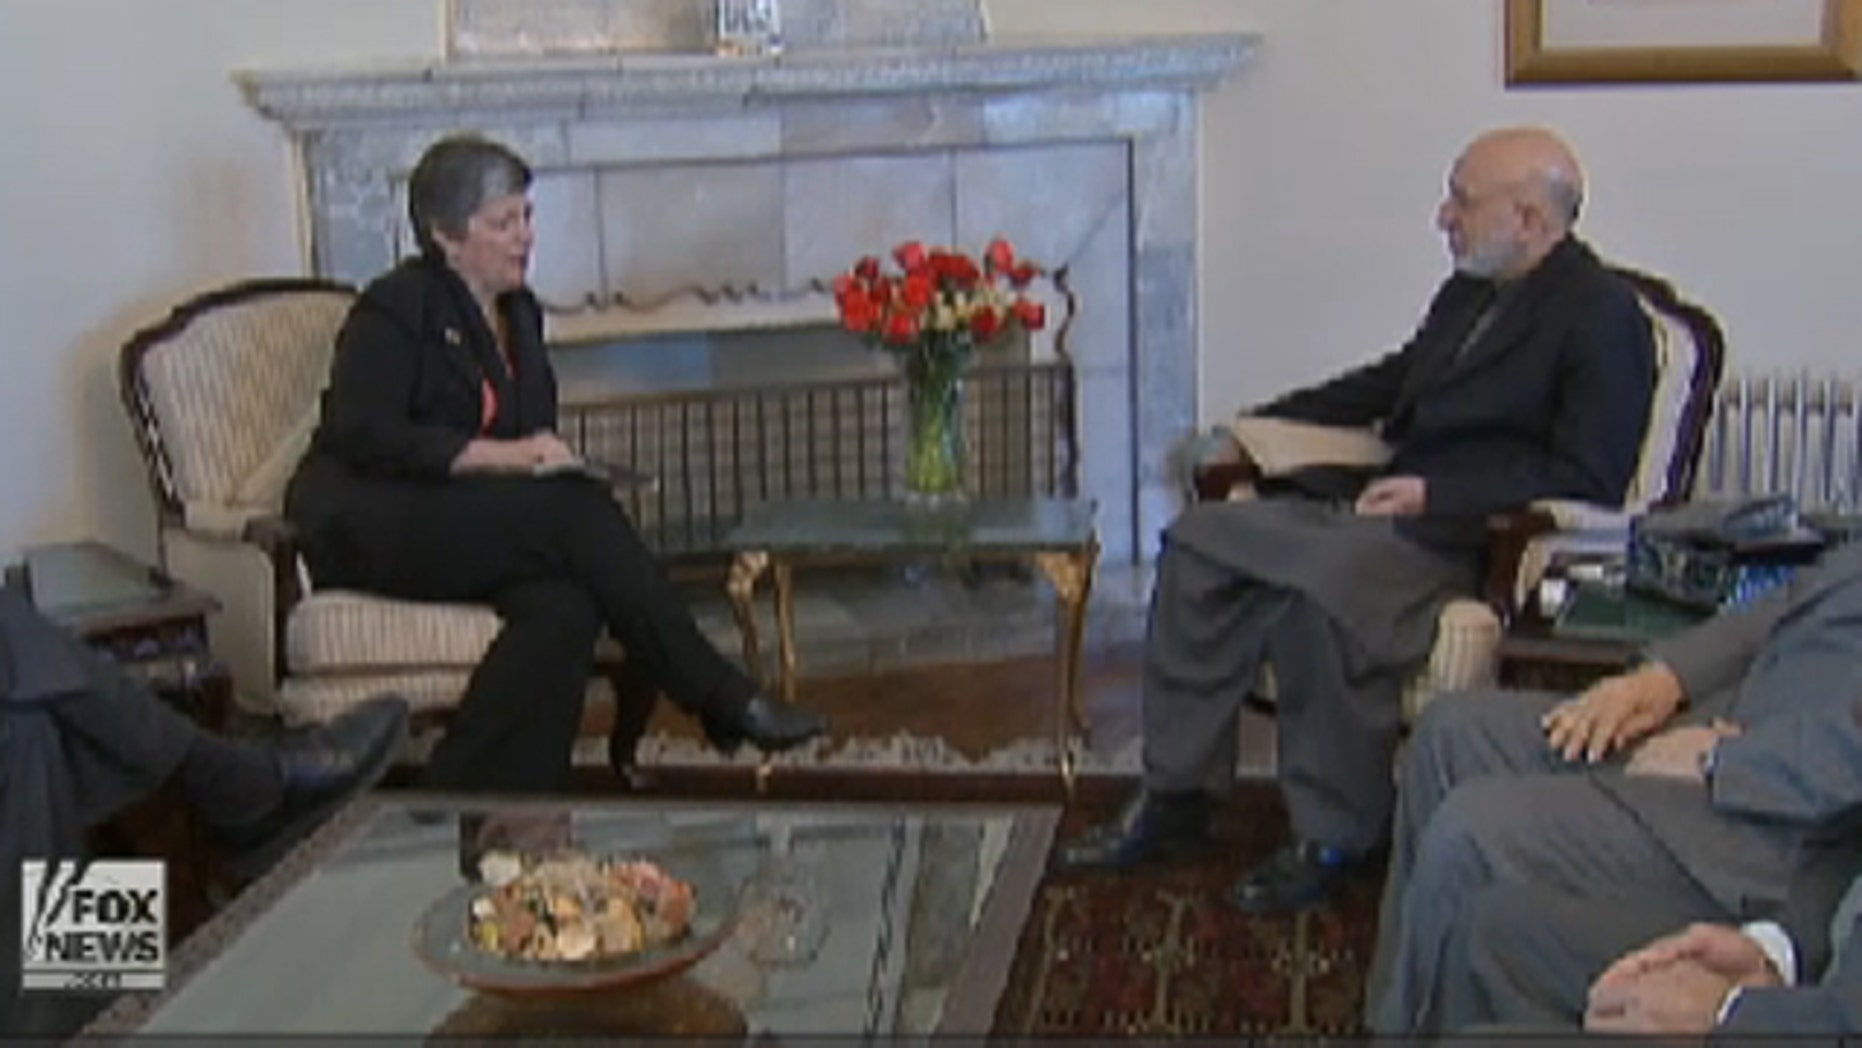 Homeland Security Secretary Janet Napolitano meets with Afghan President Hamid Karzai in Afghanistan Jan. 1.